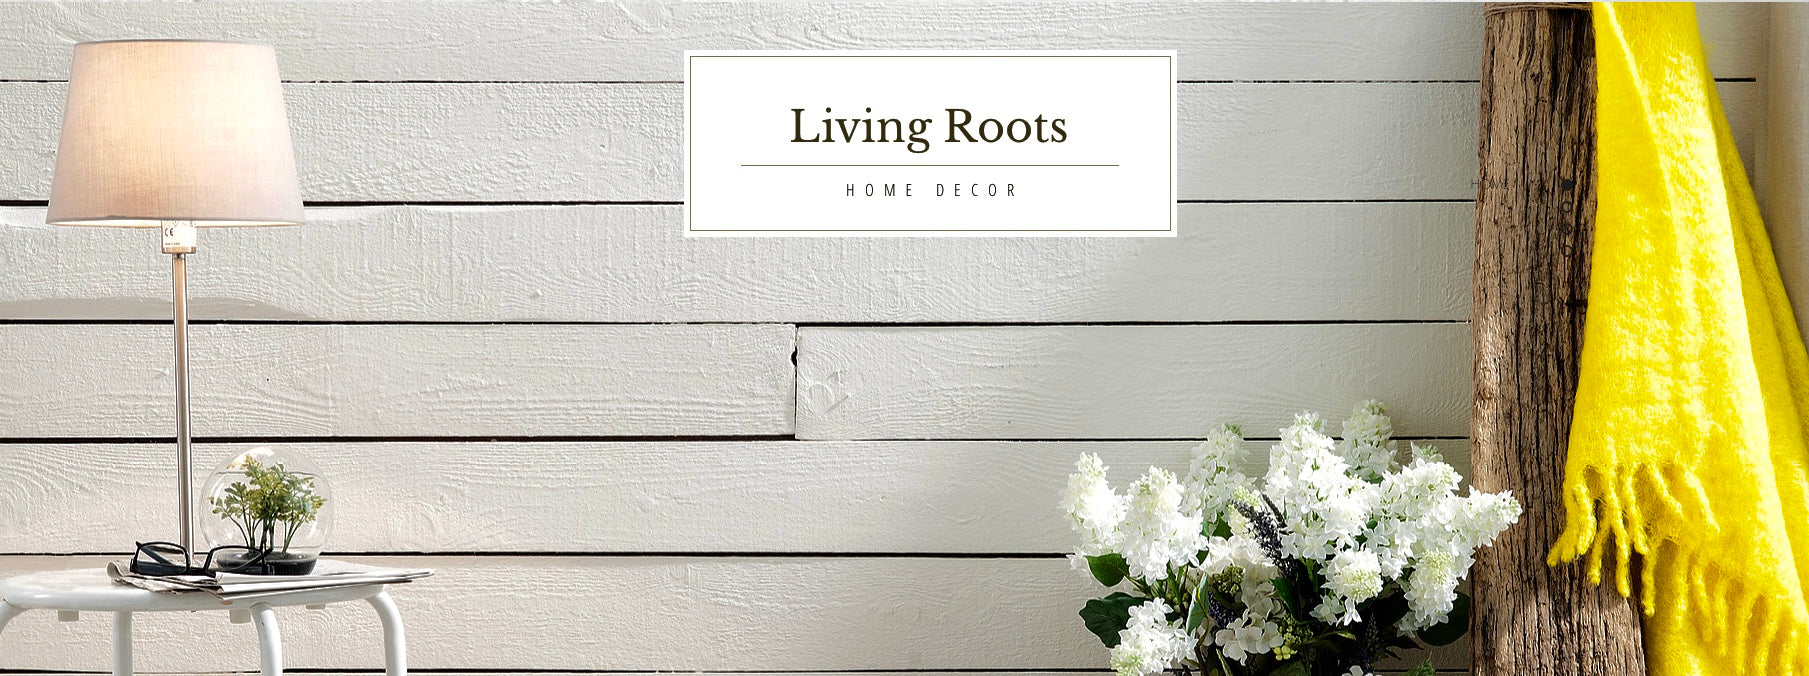 Living Roots Home Decor_living roots home decor